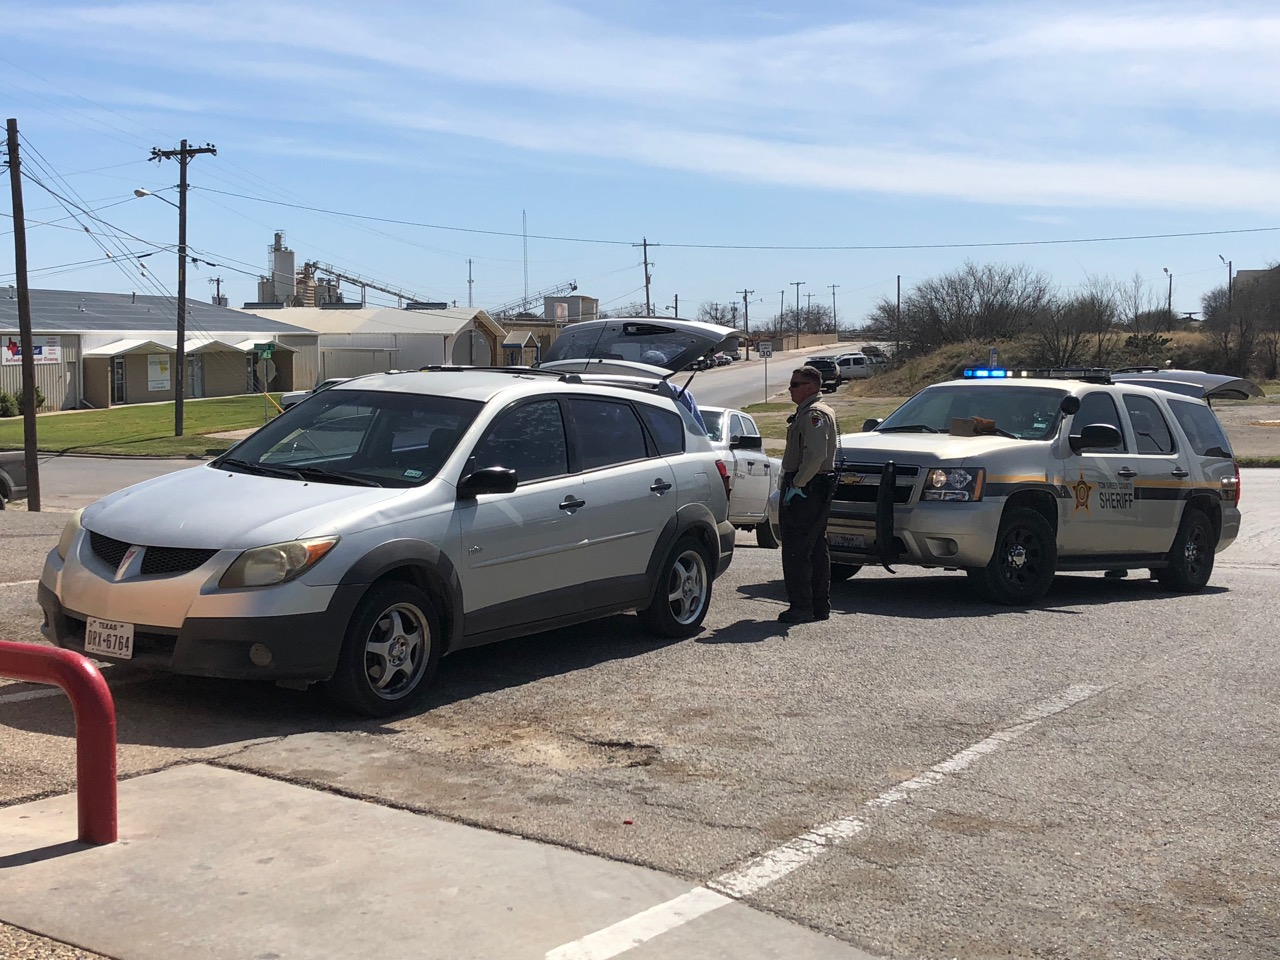 Law enforcement operations were underway Wednesday afternoon (March 21, 2018) at the Stripes at the corner of Knickerbocker and Austin. (LIVE! Photo/John Basquez)